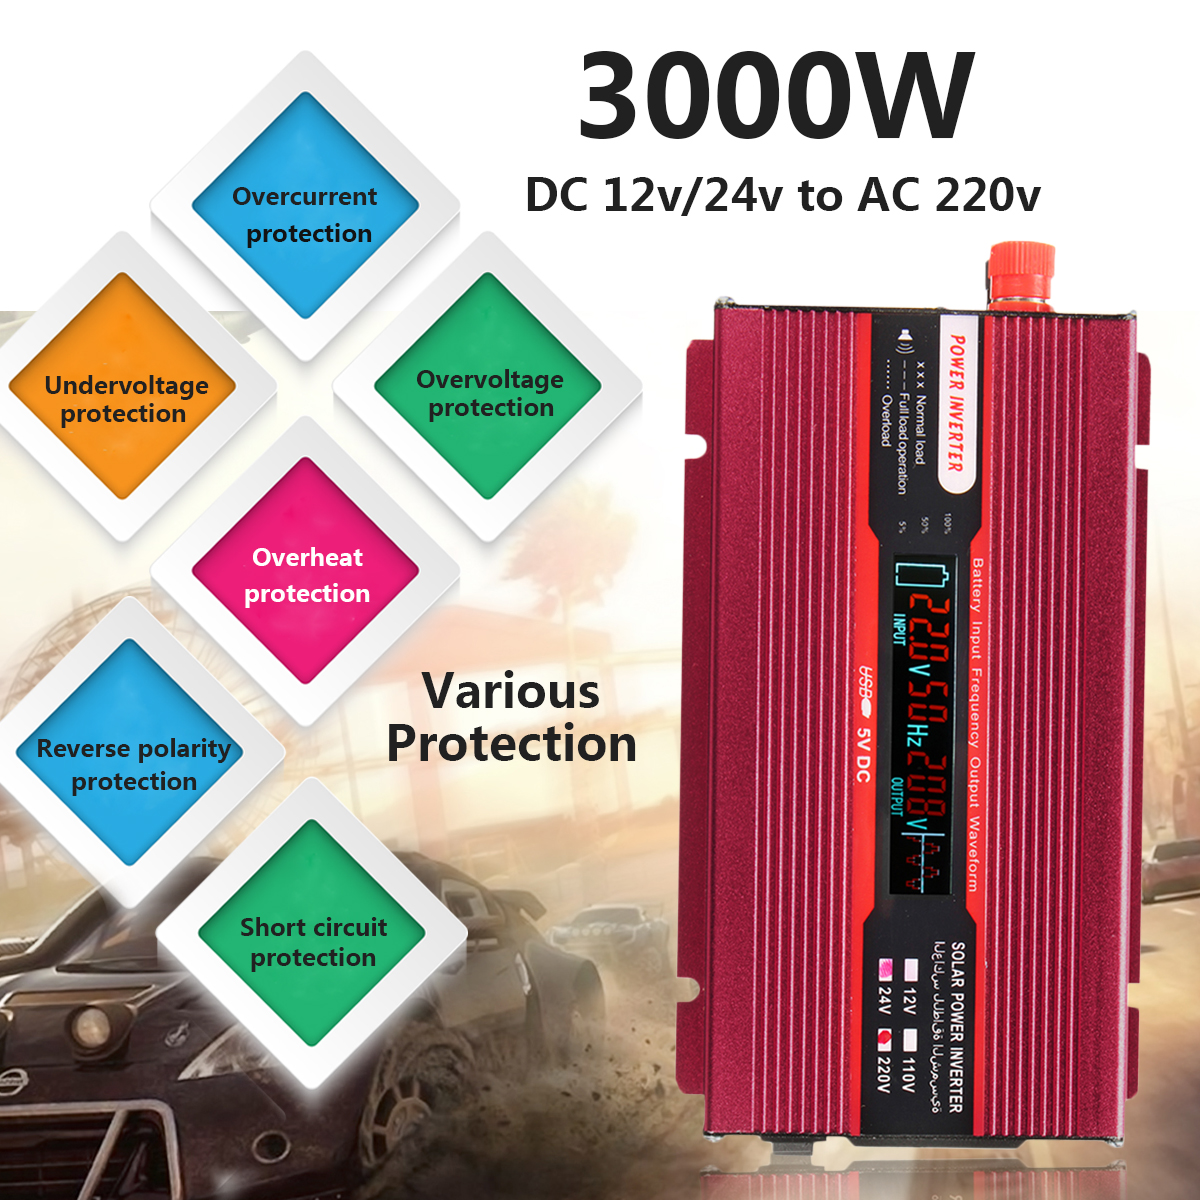 USB Modified Sine Wave Car Power Inverter PEAK 3000W 12/24V To AC 220/110V Converter Low Noise Multiple Voltage Transformer 12 24v to ac 220 110v car power inverter converter peak 10000w usb modified sine wave voltage transformer universal intelligent